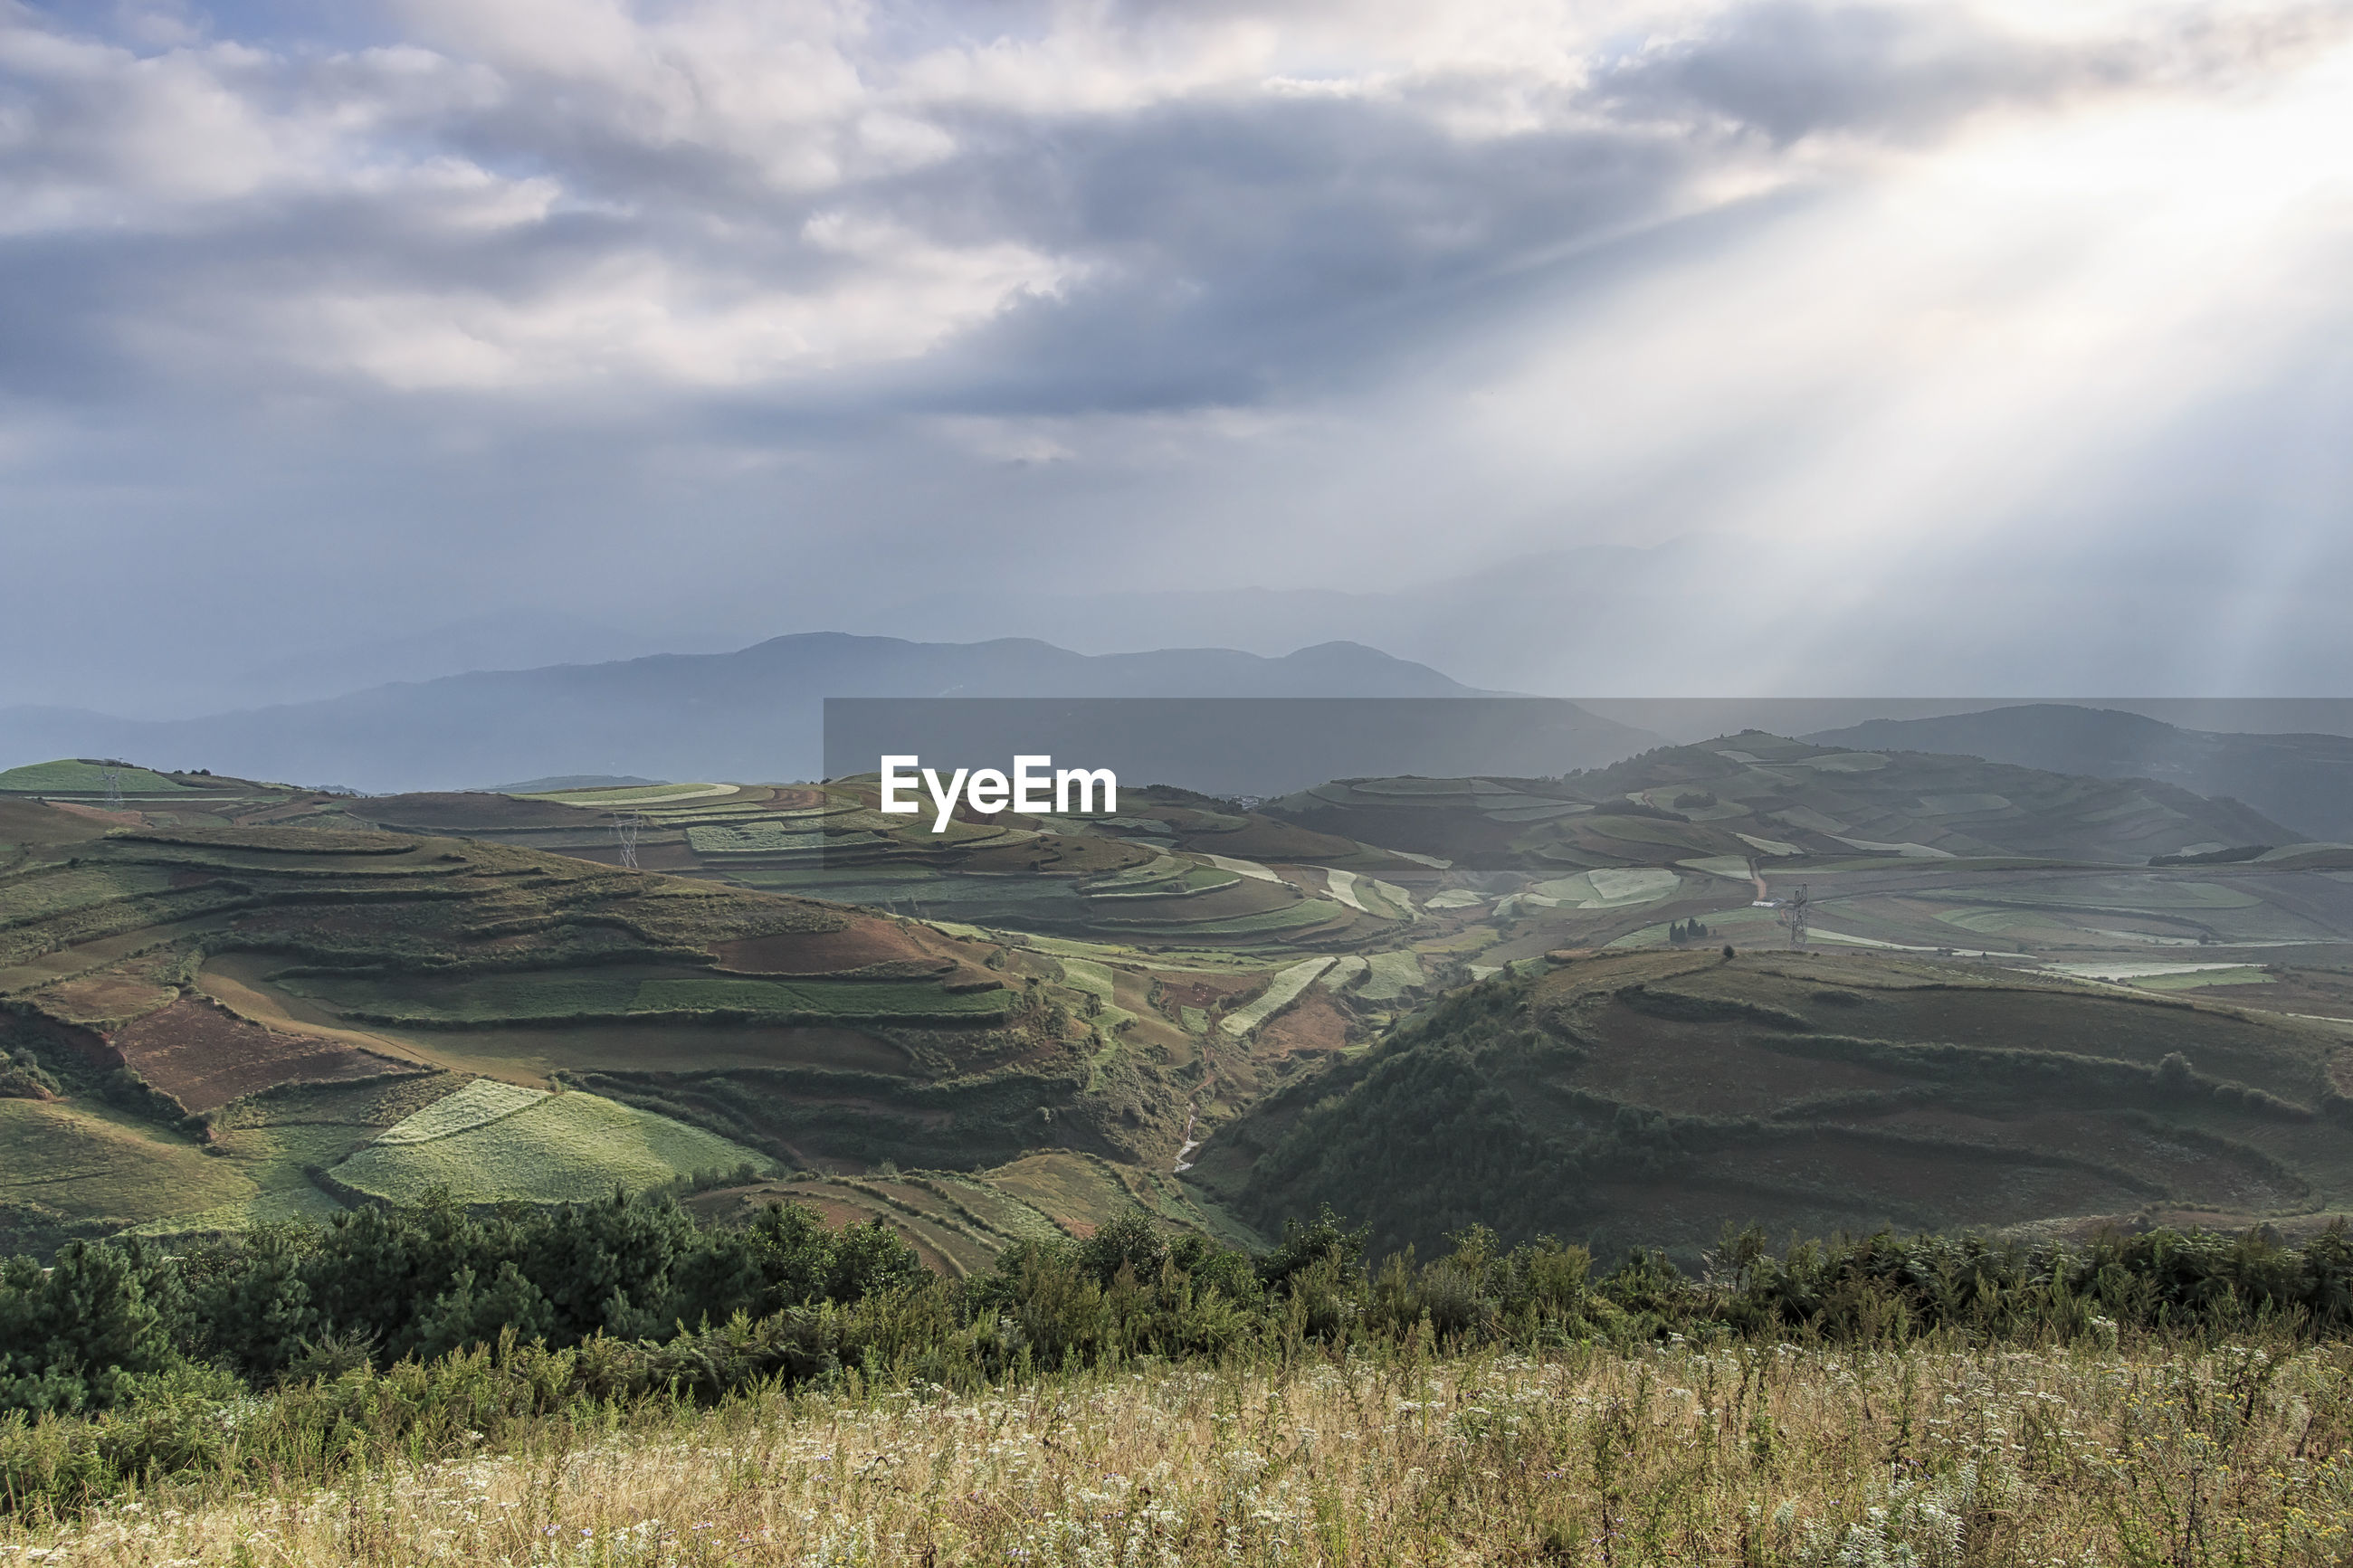 Scenic view of landscape against cloudy sky and sunbeam